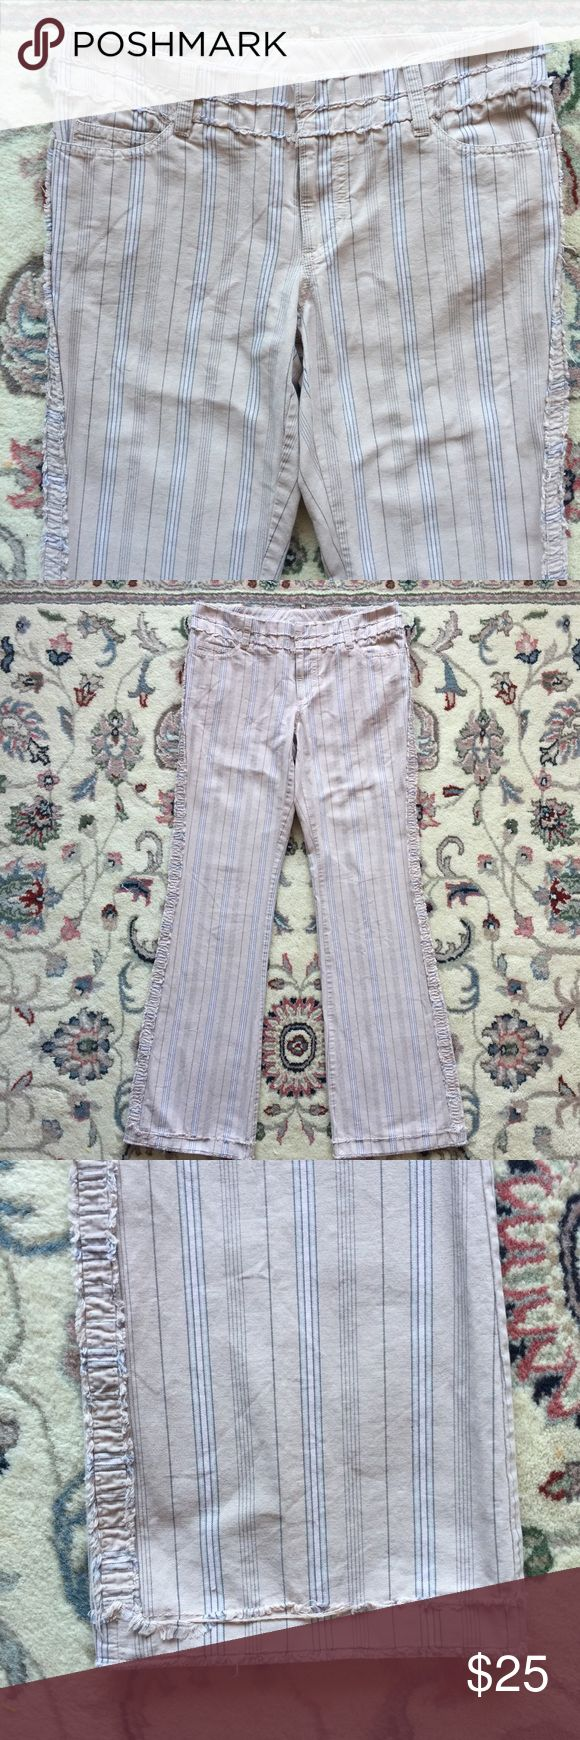 American Eagle Outfitters Fray Trim Trousers Sz 4 Light khaki color pants with pale gray and pale pink stripes. Purposely frayed trim on Waist and, side seams, and cuffs. Fabric 100% cotton. Waist measures 31 inches. Rise is 8 inches. Inseam is 31 inches. Leg opening is 9 1/2 inches. Excellent condition. American Eagle Outfitters Pants Trousers